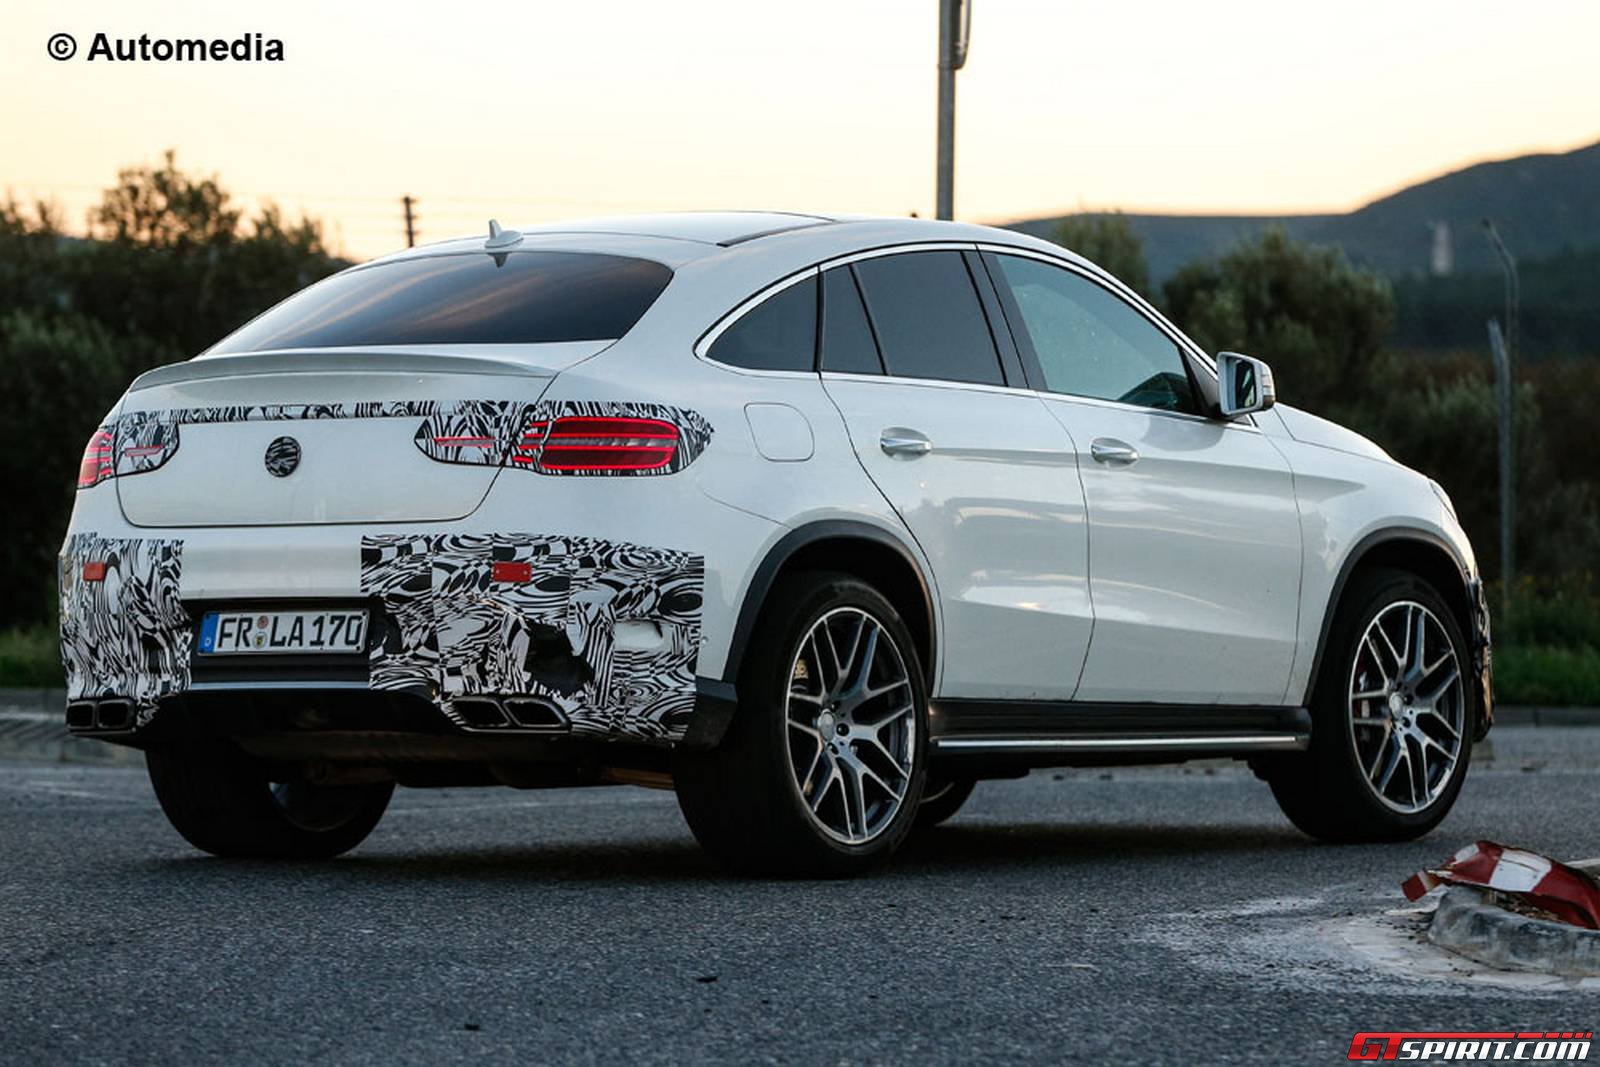 2018 Mercedes Benz GLE Coupe photo - 1